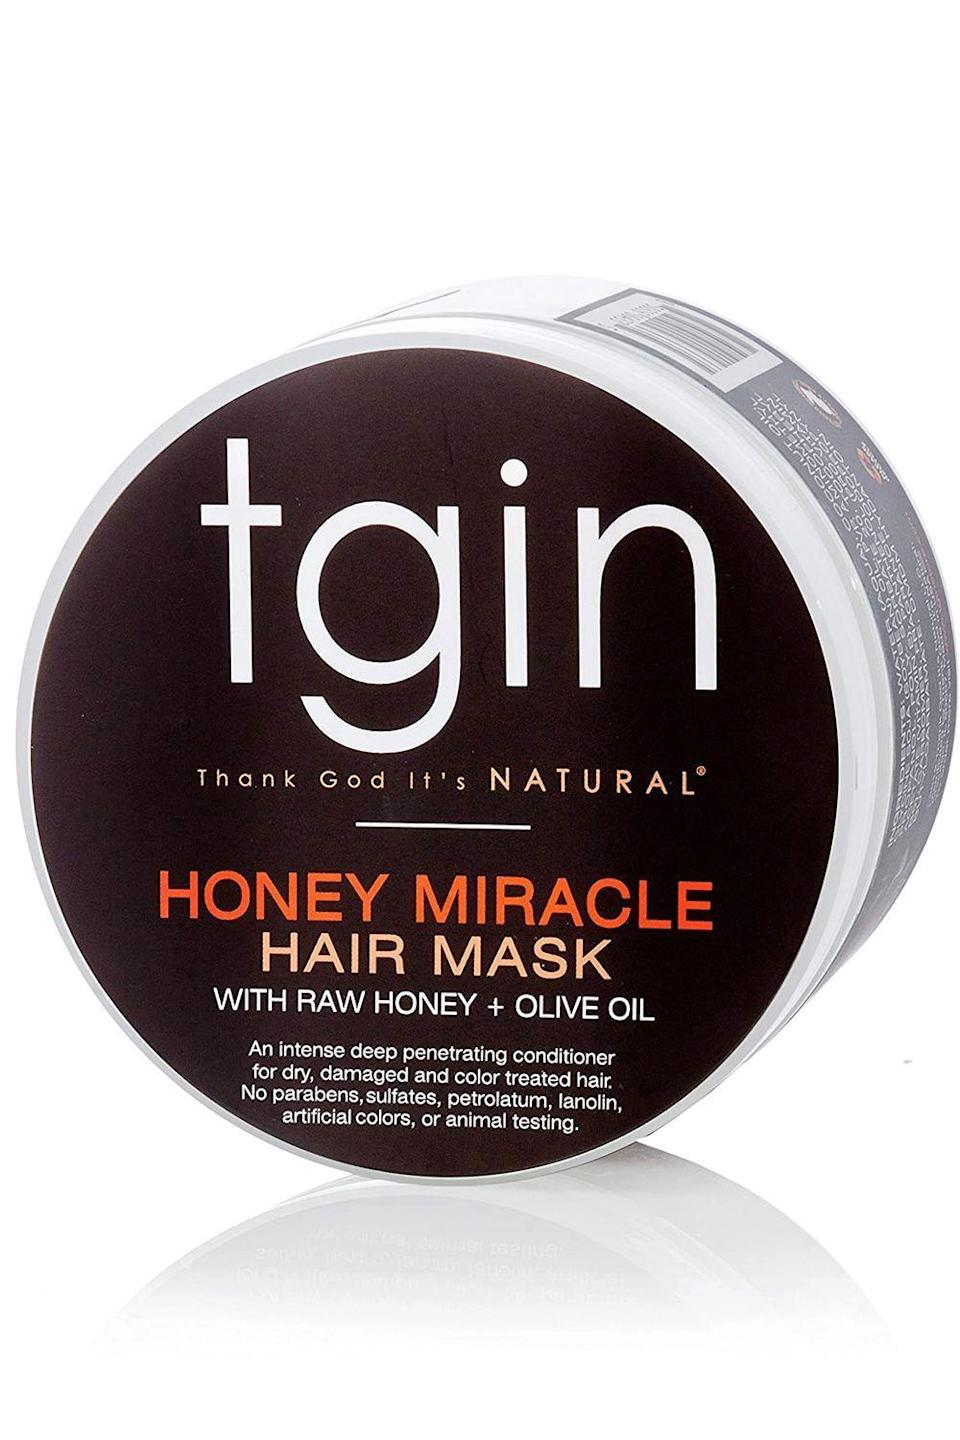 """<p><strong>Thank God It's Natural</strong></p><p>ulta.com</p><p><strong>$17.99</strong></p><p><a href=""""https://go.redirectingat.com?id=74968X1596630&url=https%3A%2F%2Fwww.ulta.com%2Fhoney-miracle-hair-mask-deep-conditioner%3FproductId%3Dpimprod2005394&sref=https%3A%2F%2Fwww.cosmopolitan.com%2Fstyle-beauty%2Fbeauty%2Fg34358051%2Fblack-owned-hair-products%2F"""" rel=""""nofollow noopener"""" target=""""_blank"""" data-ylk=""""slk:Shop Now"""" class=""""link rapid-noclick-resp"""">Shop Now</a></p><p>When it glides onto your hair and seeps deep into the cuticle, this Black-owned hair product is able to transform dull and parched hair. The formula is made up of a concoction of natural ingredients: raw honey, jojoba oil, and olive oil. And when they come together in this <a href=""""https://www.cosmopolitan.com/style-beauty/beauty/g28313157/best-deep-conditioner/"""" rel=""""nofollow noopener"""" target=""""_blank"""" data-ylk=""""slk:deep conditioner"""" class=""""link rapid-noclick-resp"""">deep conditioner</a>, <strong>you're left with hair that's shinier, bouncier, and healthier.</strong></p>"""